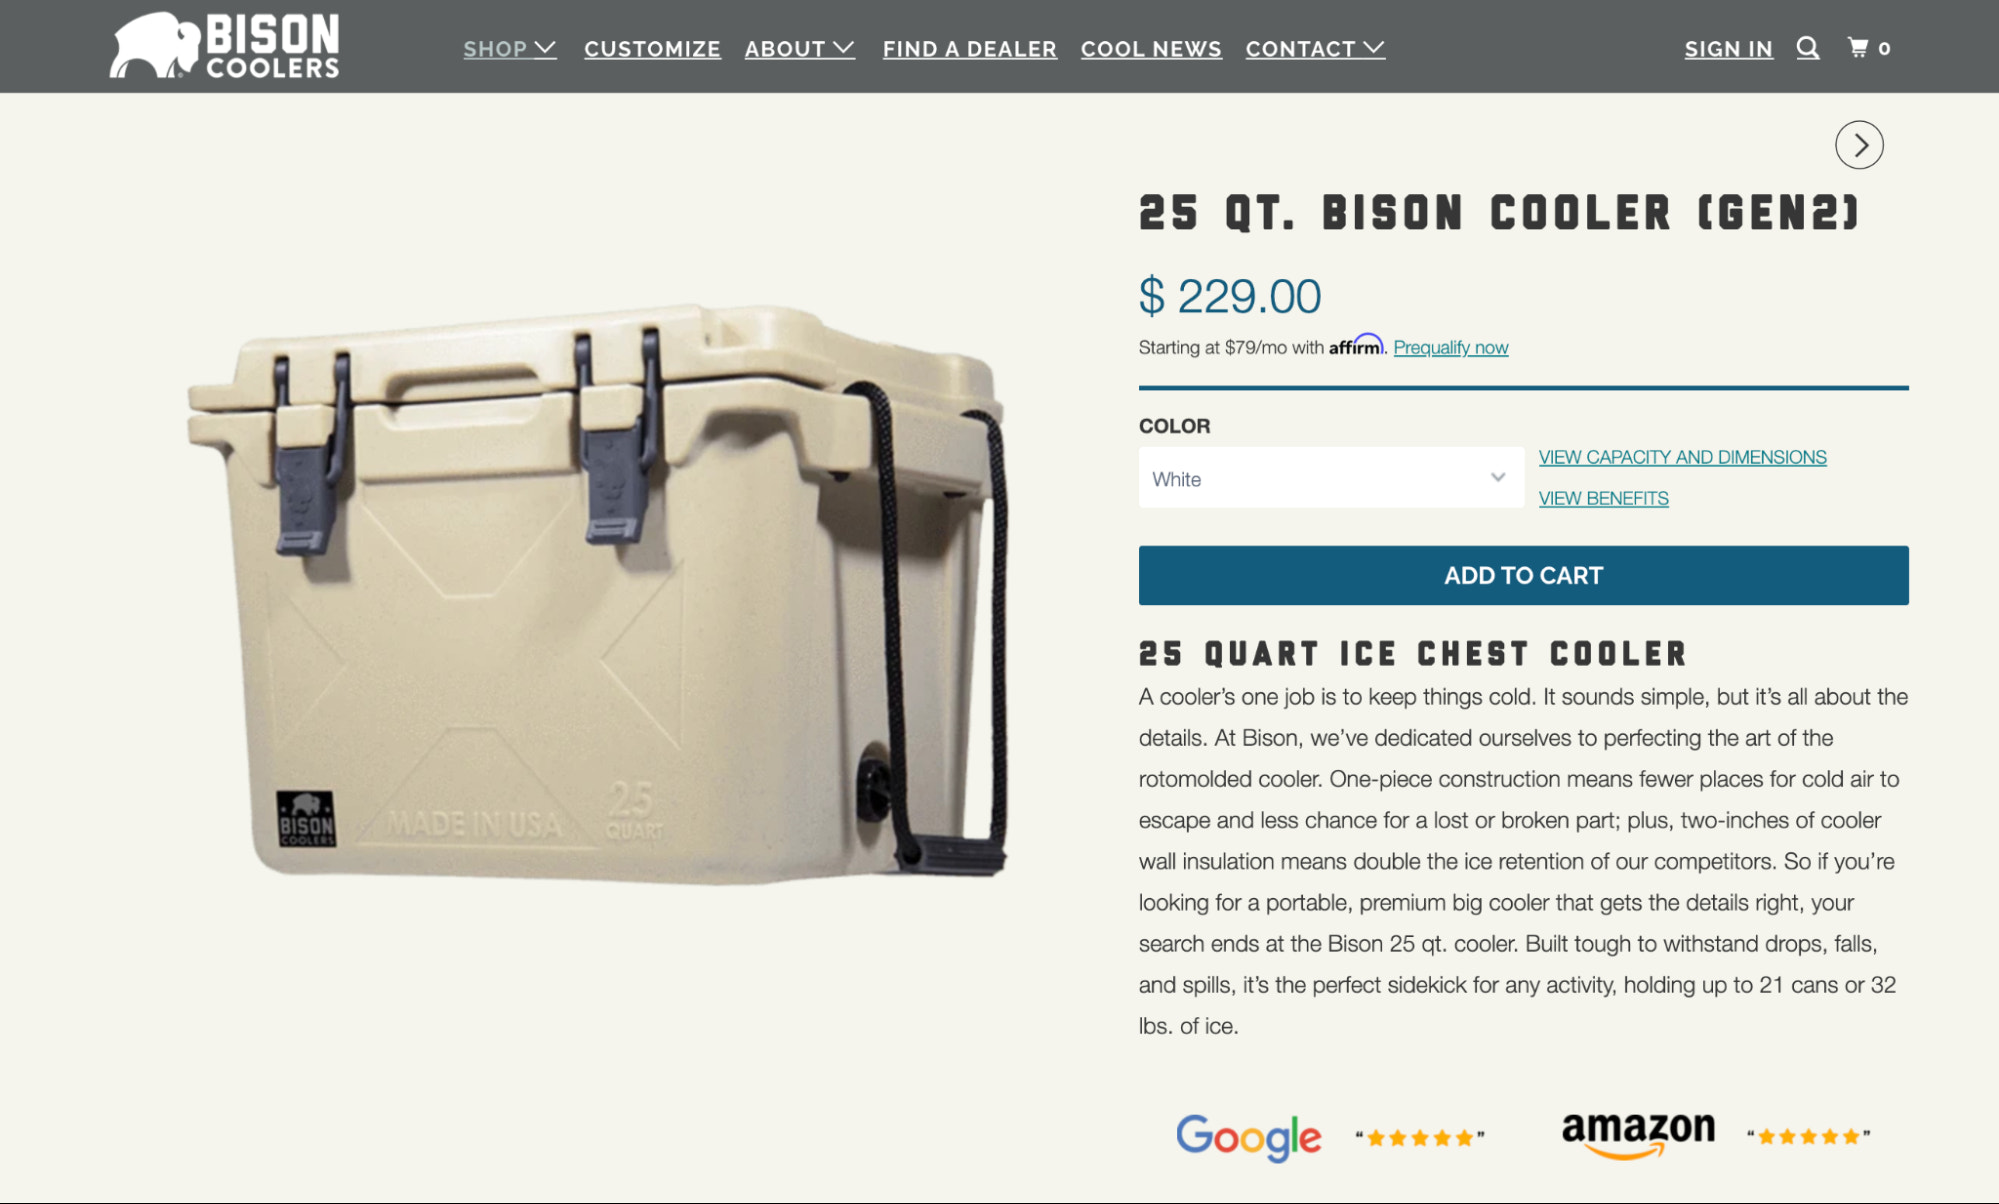 Copywriting featured on a product page for Bison Coolers.